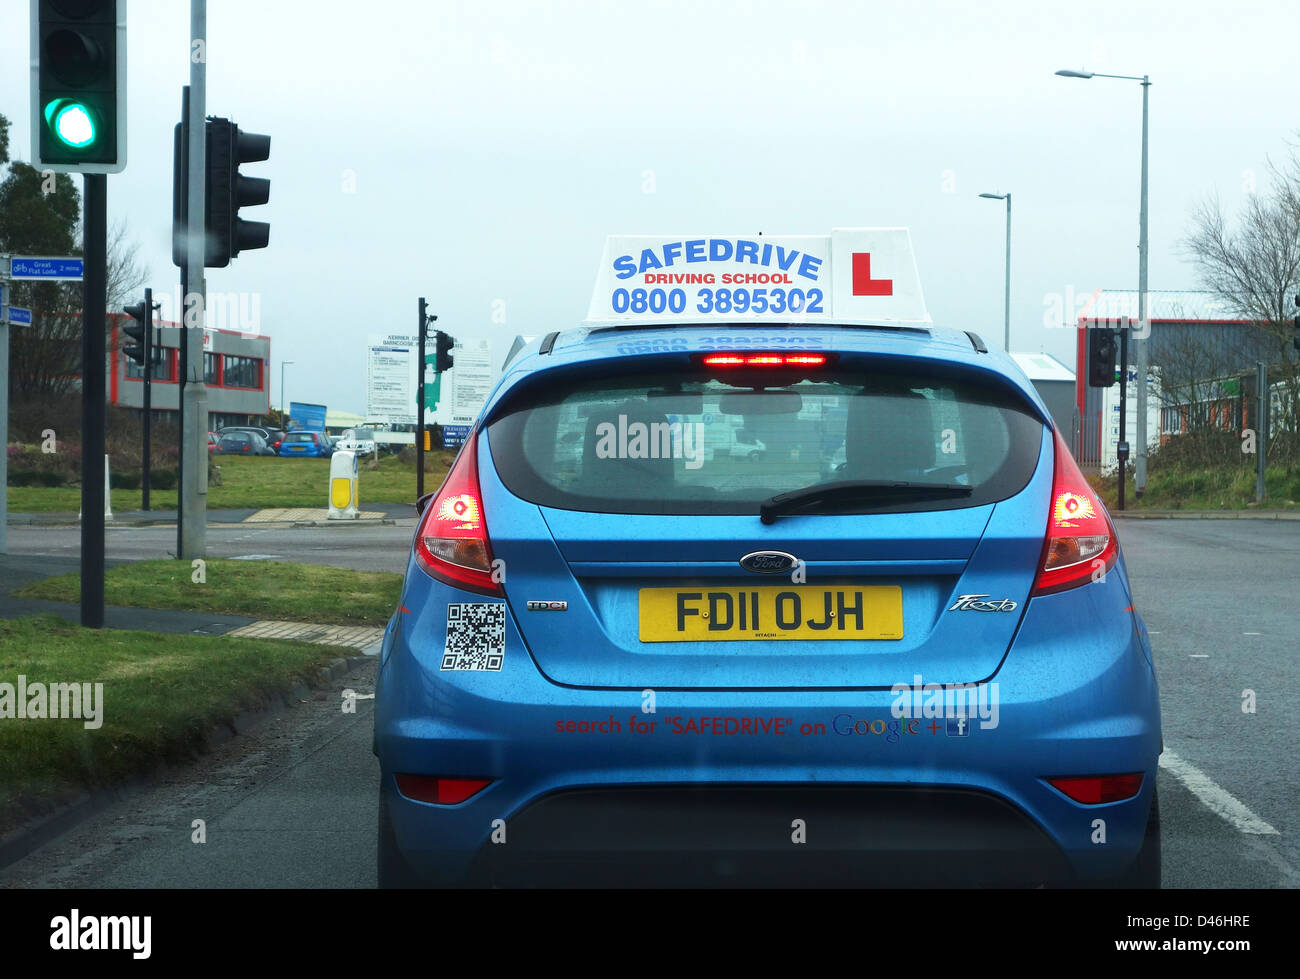 A learner driver at traffic lights - Stock Image